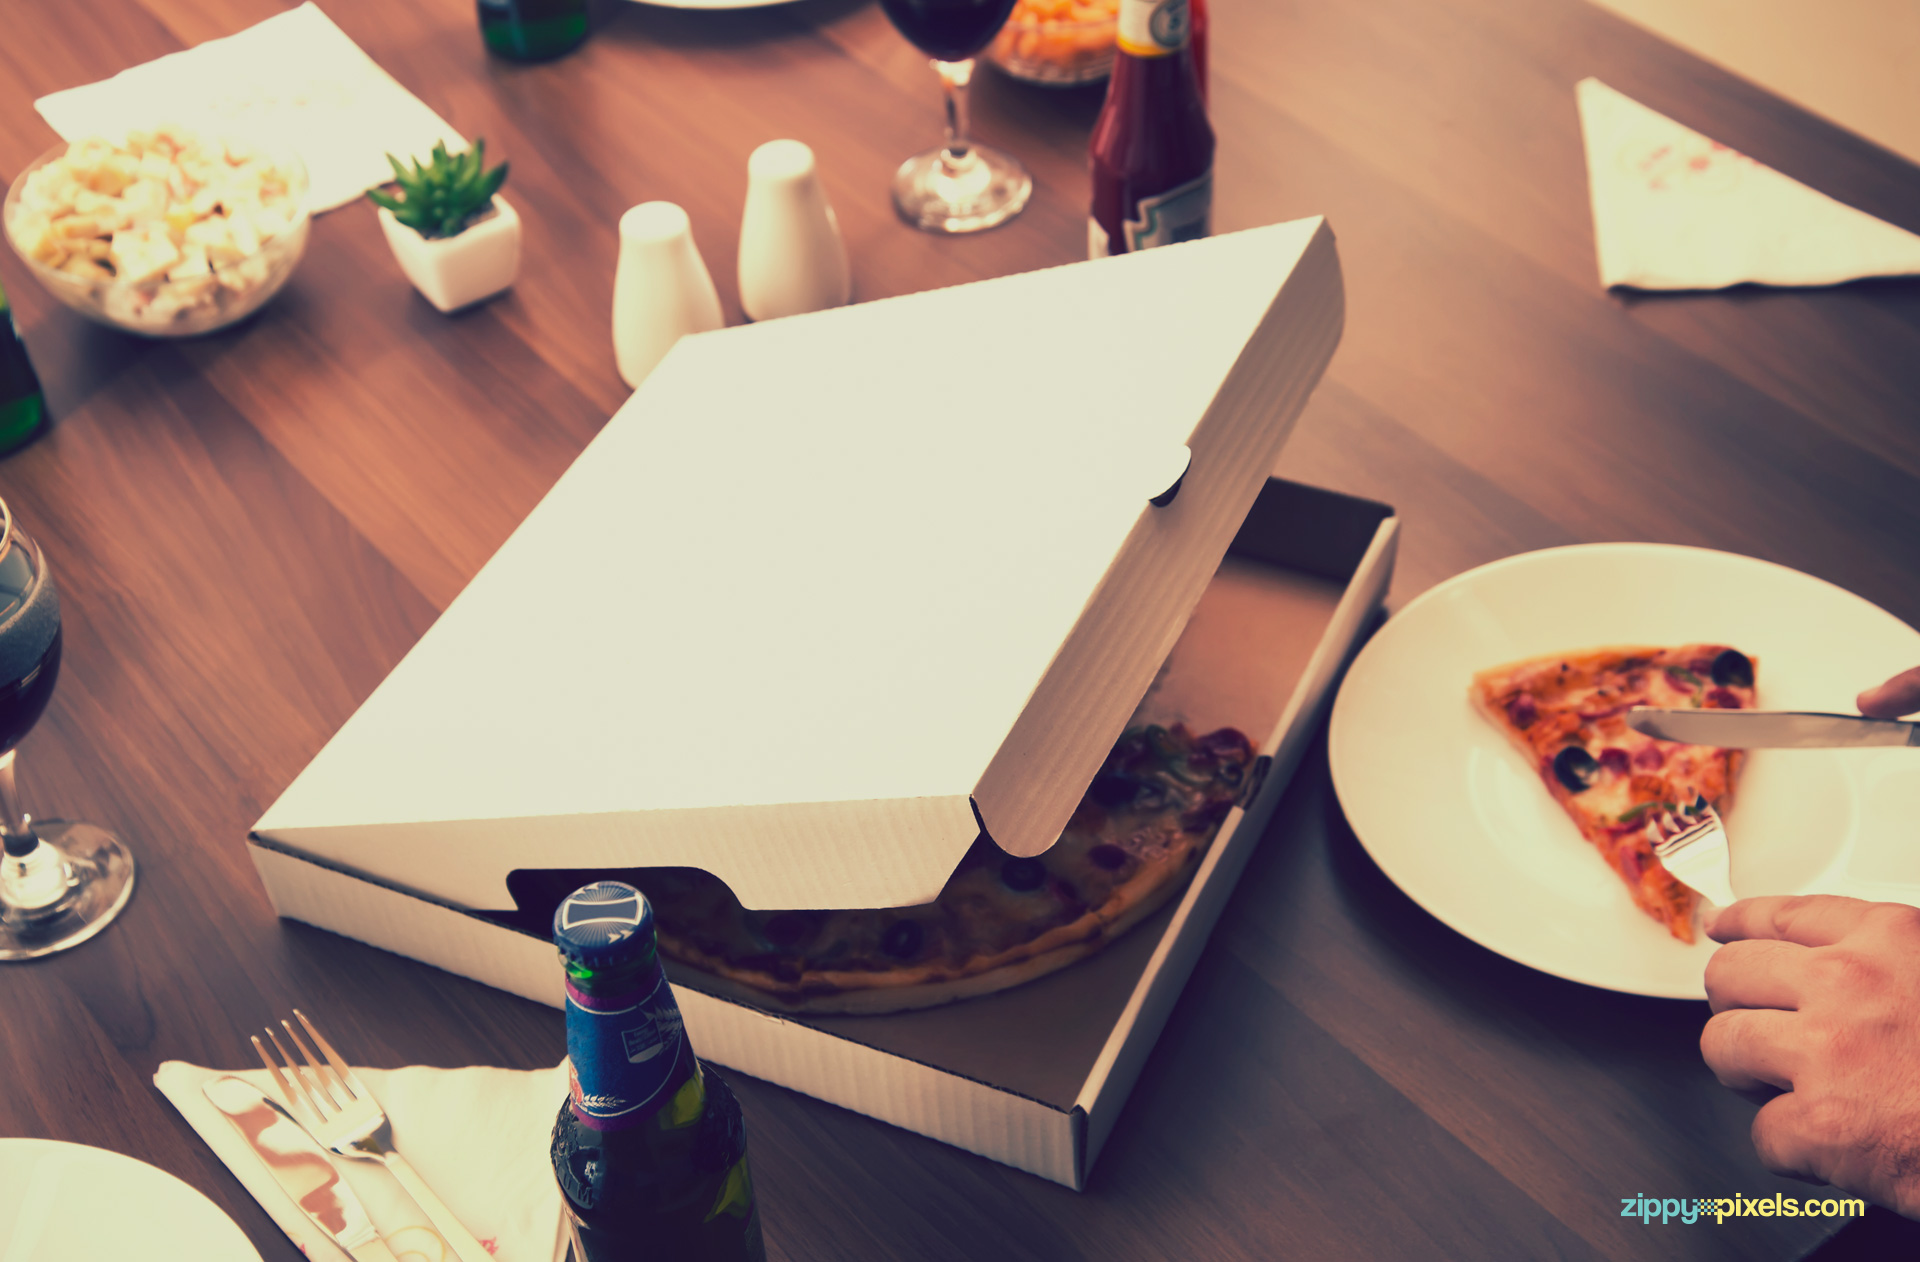 Every part of this pizza box mockup PSD is customizable.